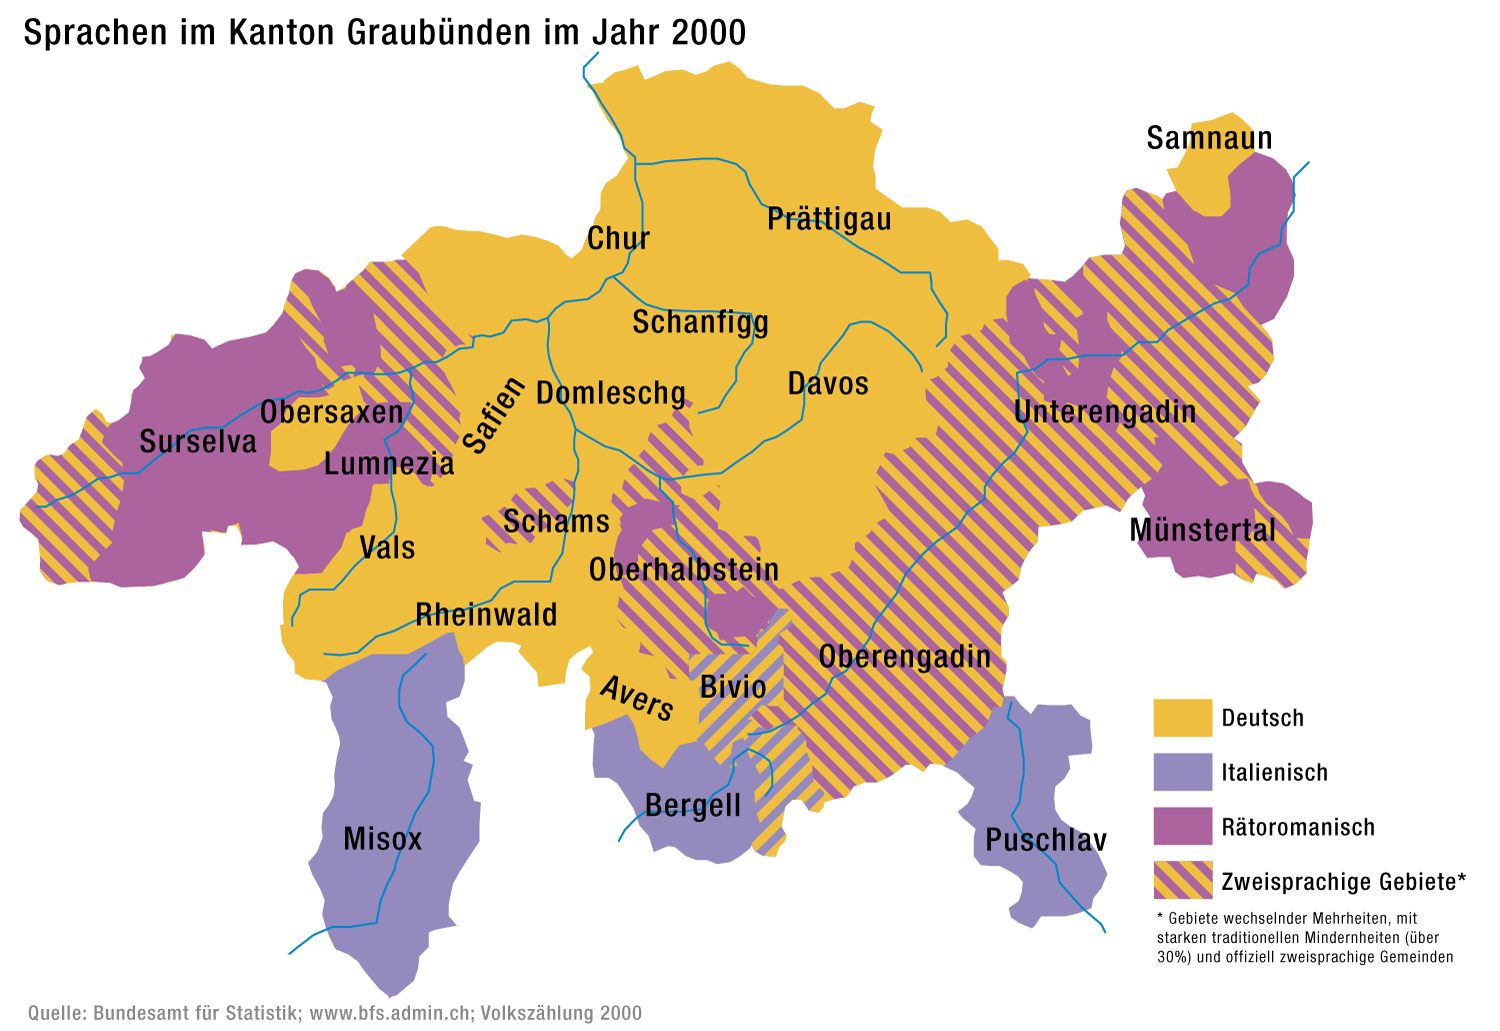 Geographical distribution of languages in Grisons canton